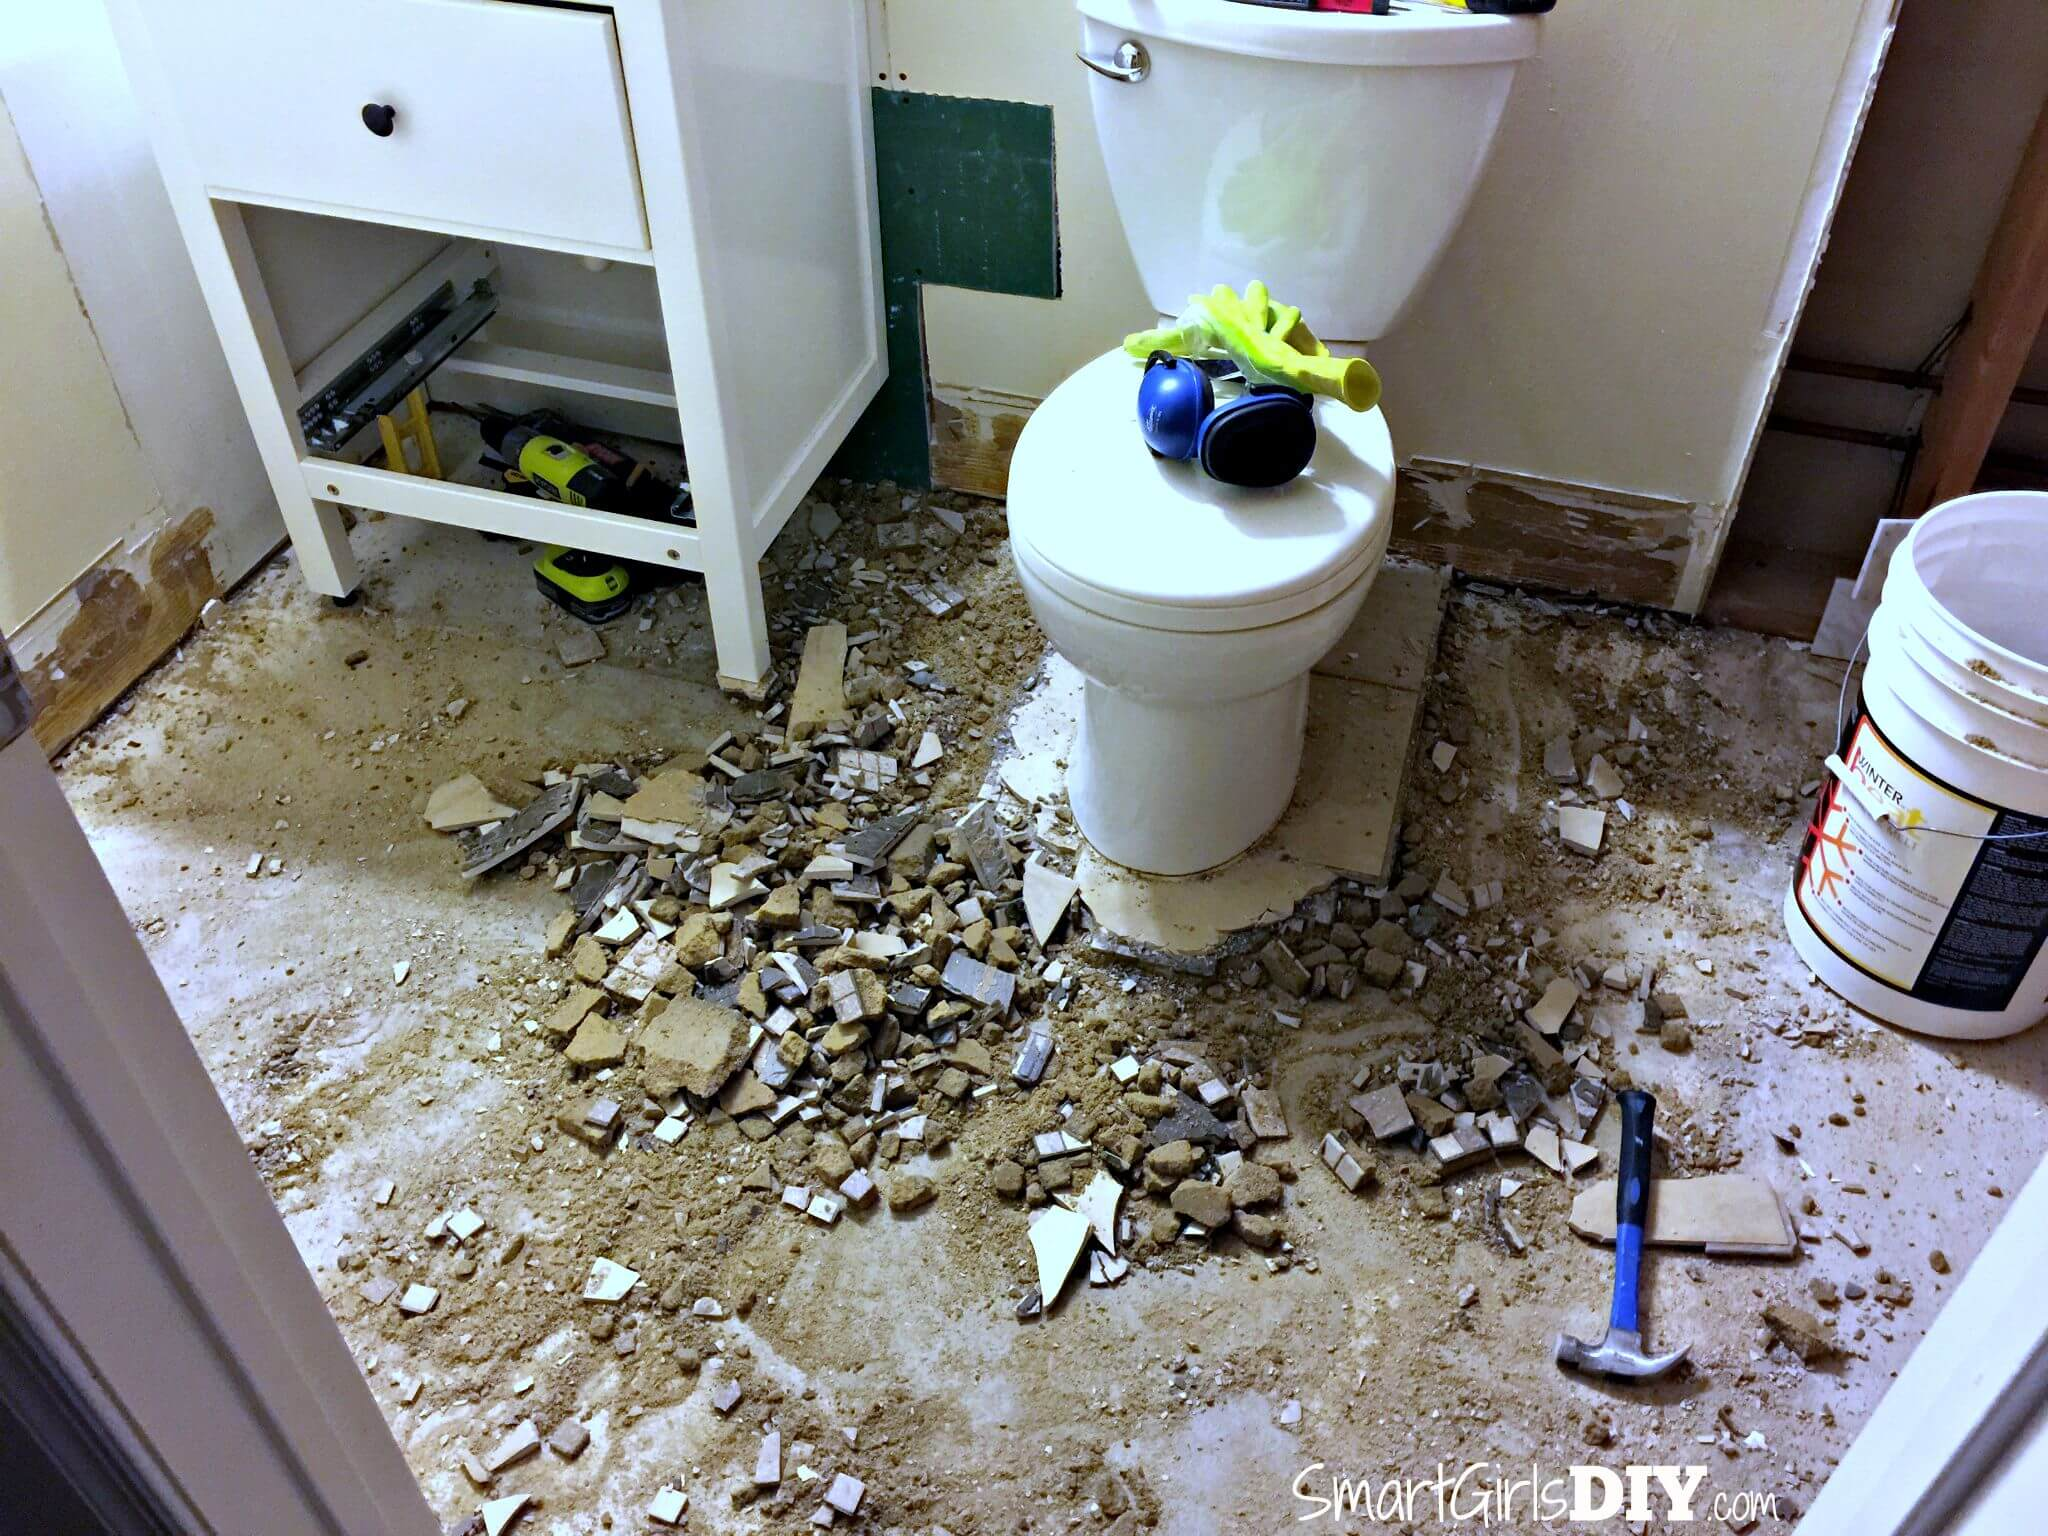 Guest bathroom 7 diy hex tile floor demo tile bathroom floor still using toiled and sink dailygadgetfo Image collections